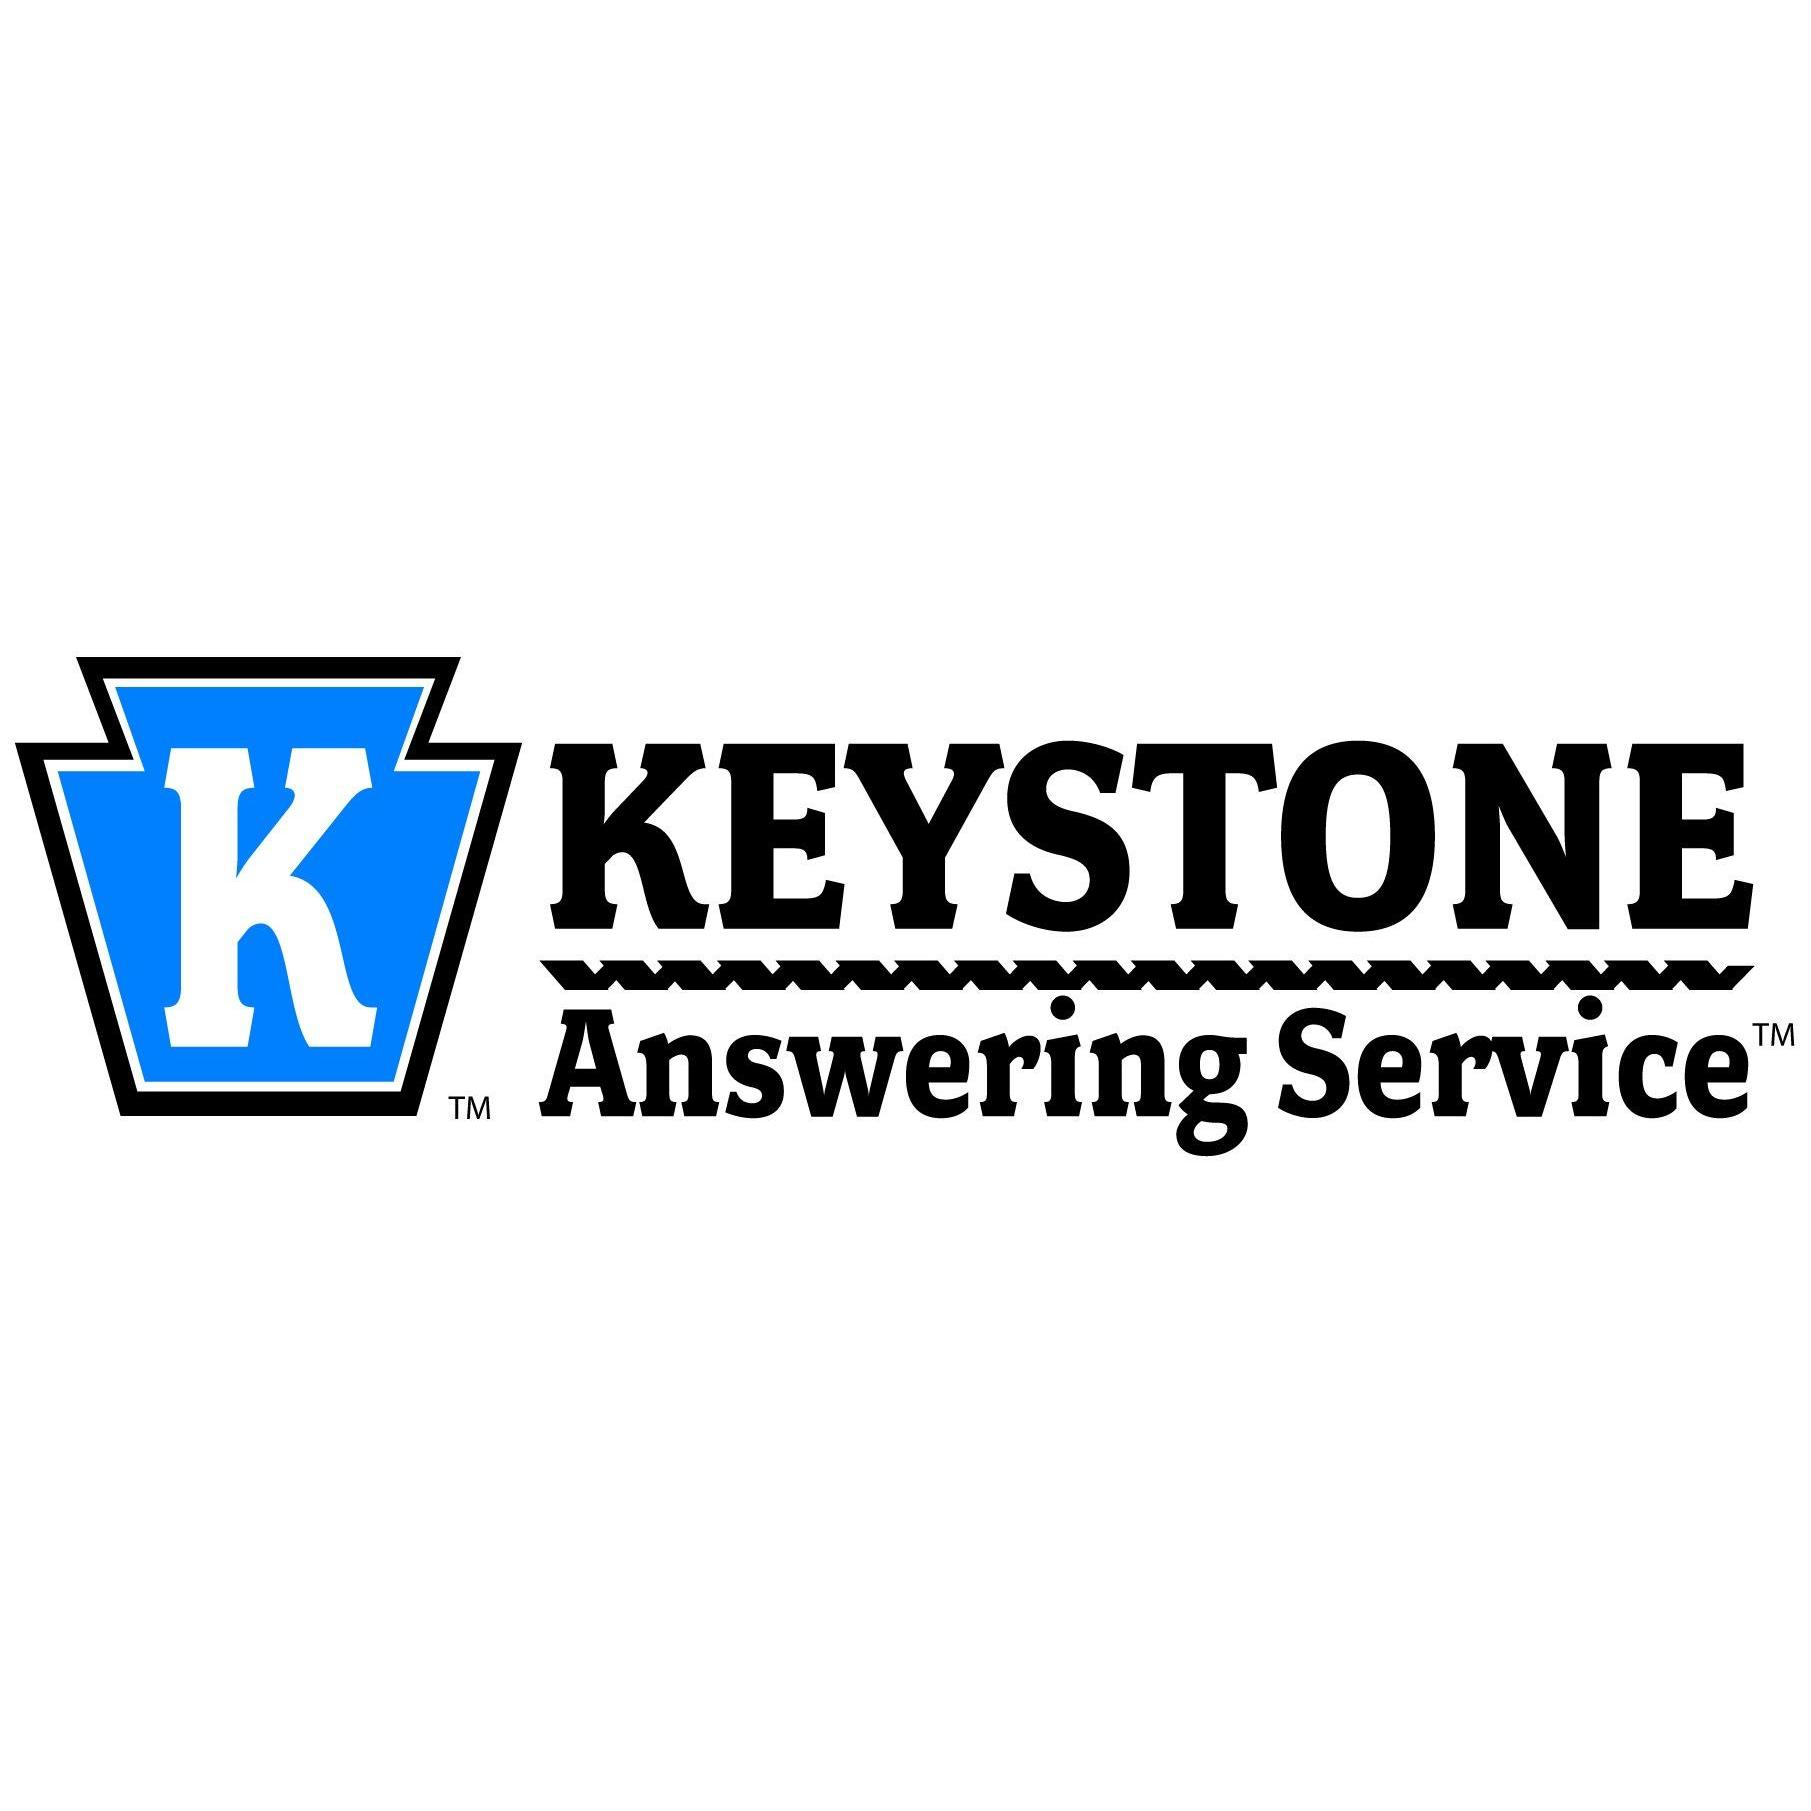 Keystone Answering Service